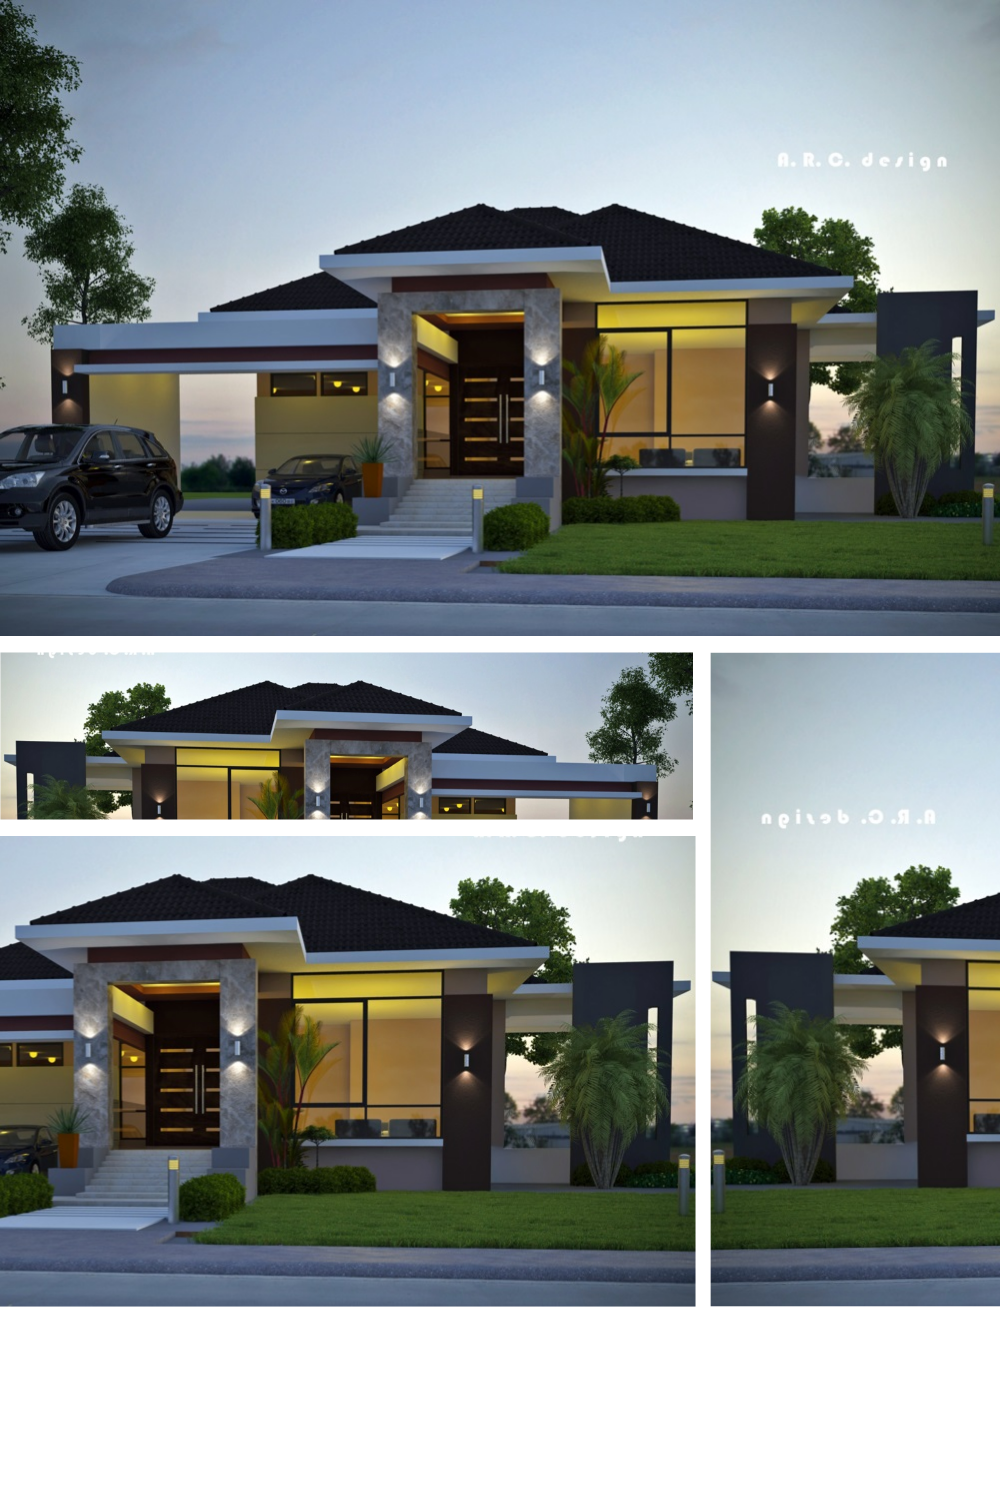 Custom Home Design Affordable House Design Modern Bungalow House Beautiful House Plans